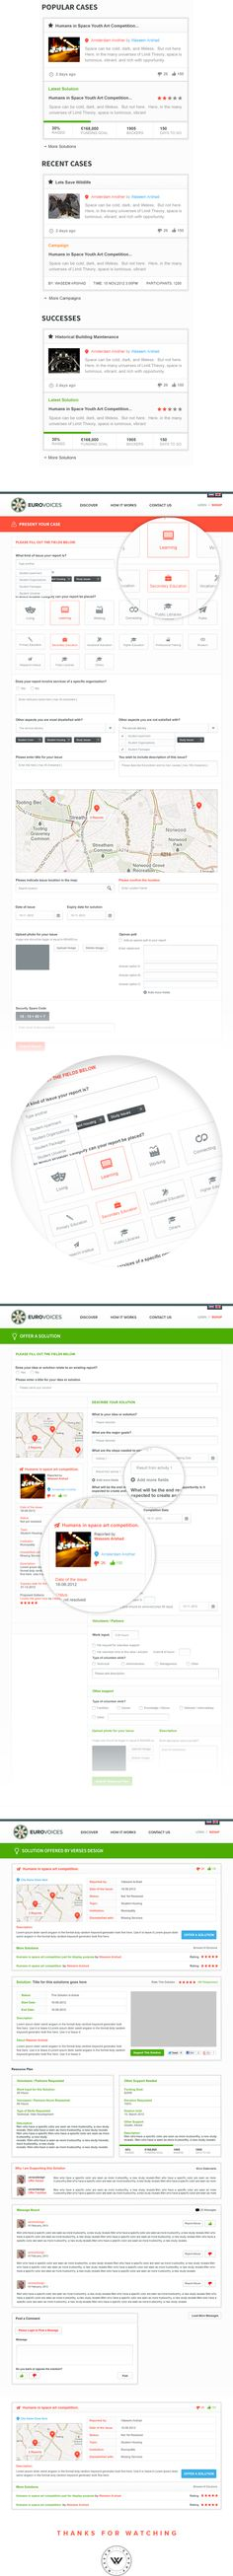 Euro Voices - Branding Ui / Ux on Web Design Served